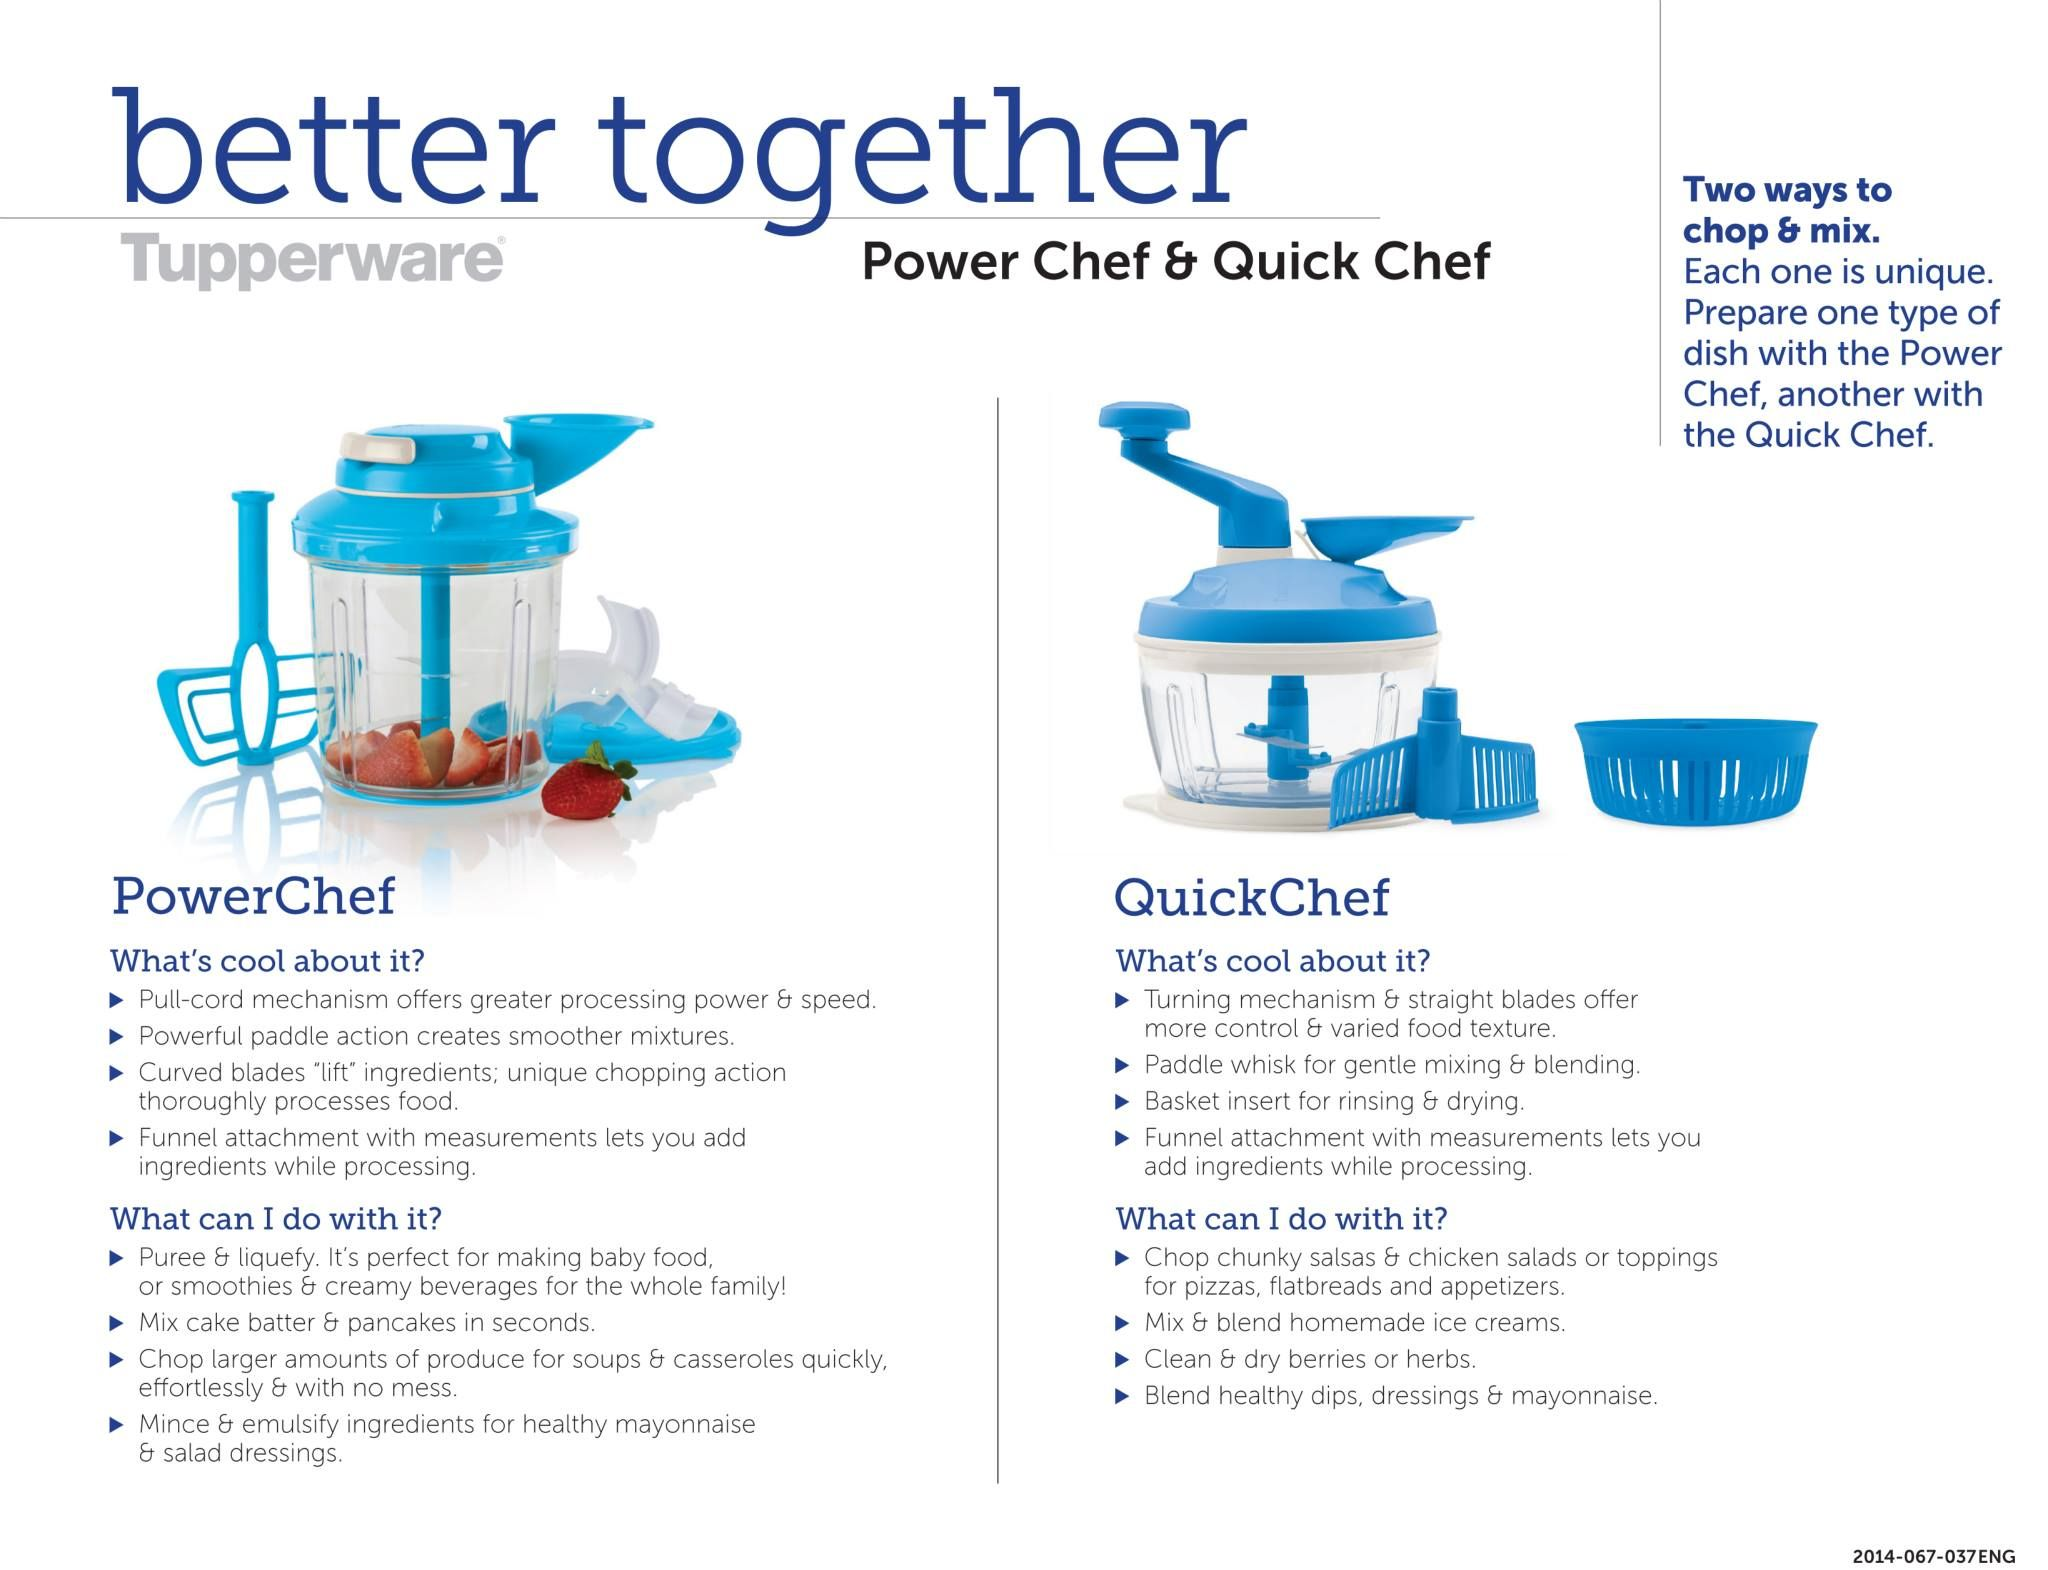 Verwonderend Pin by Candy Slabaugh on Tupperware Power Chef & Quick Chef GG-92